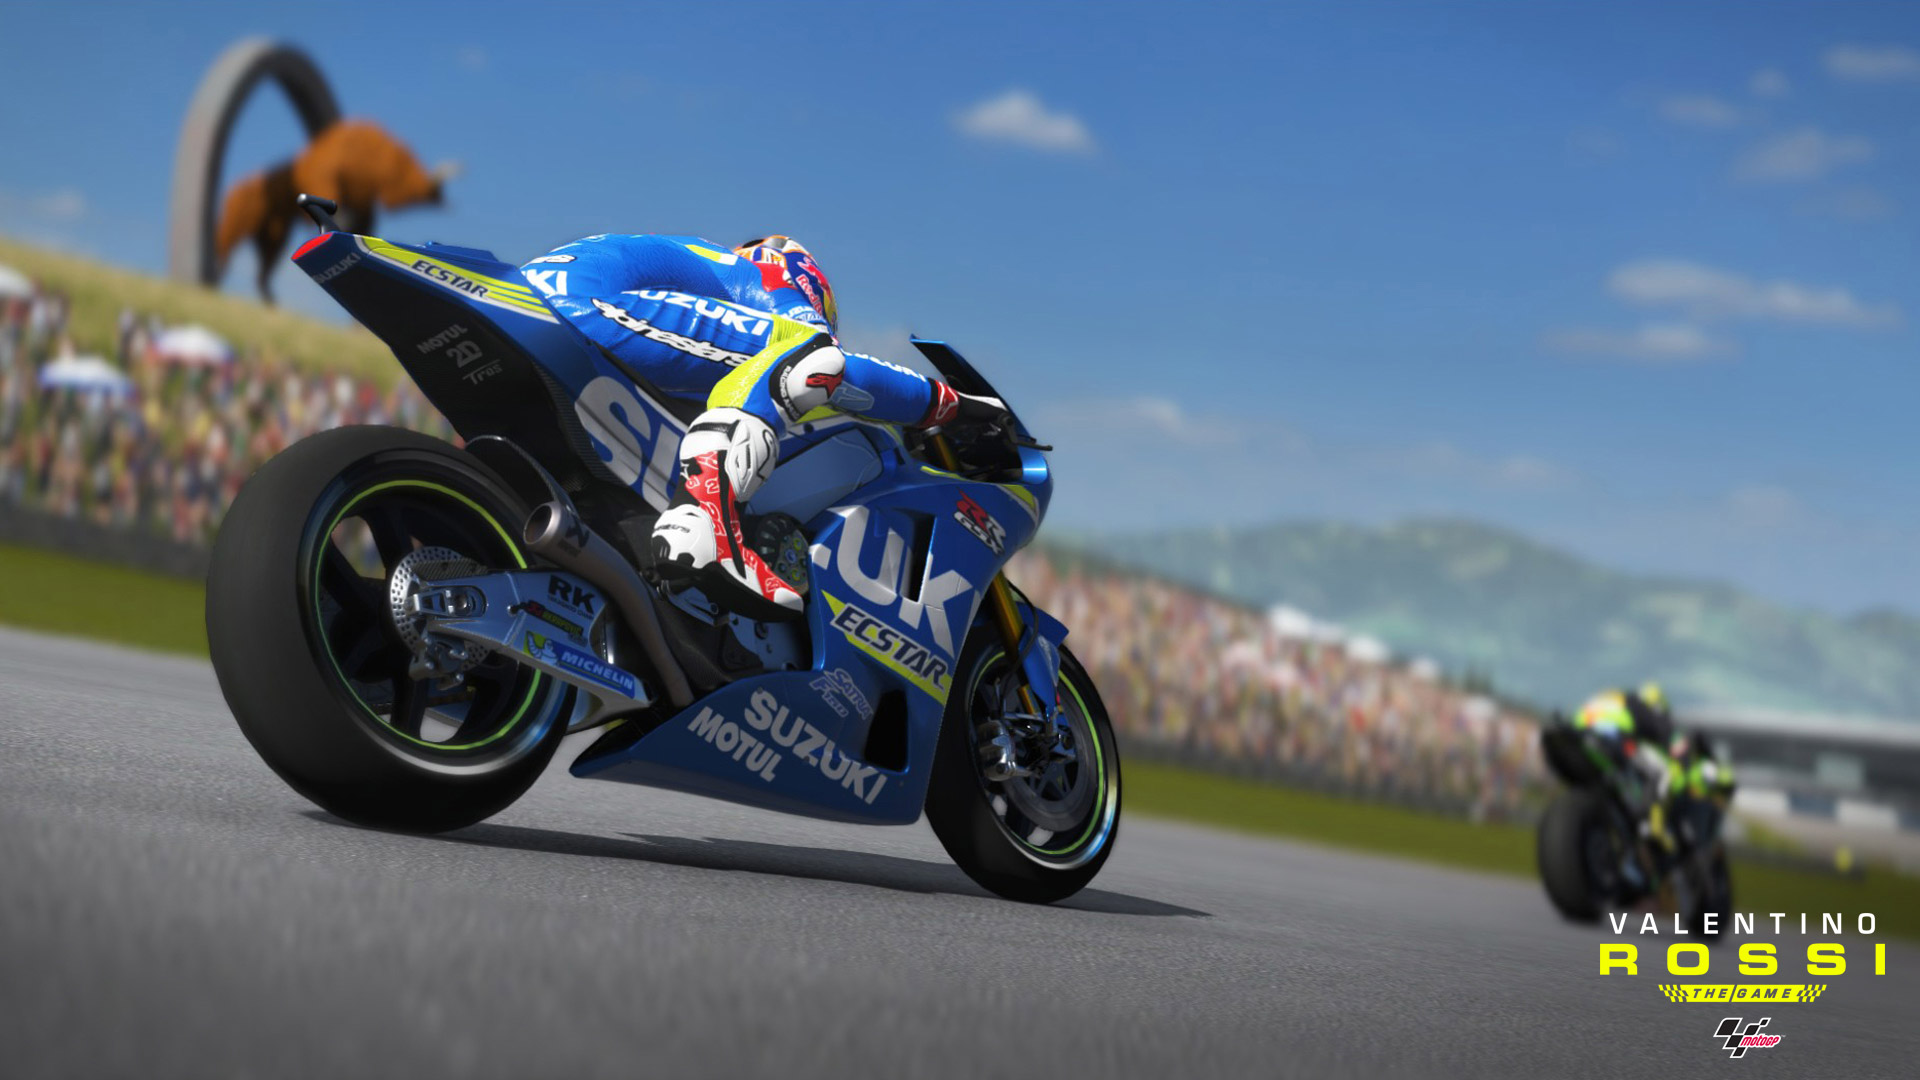 Free Valentino Rossi: The Game Wallpaper in 1920x1080